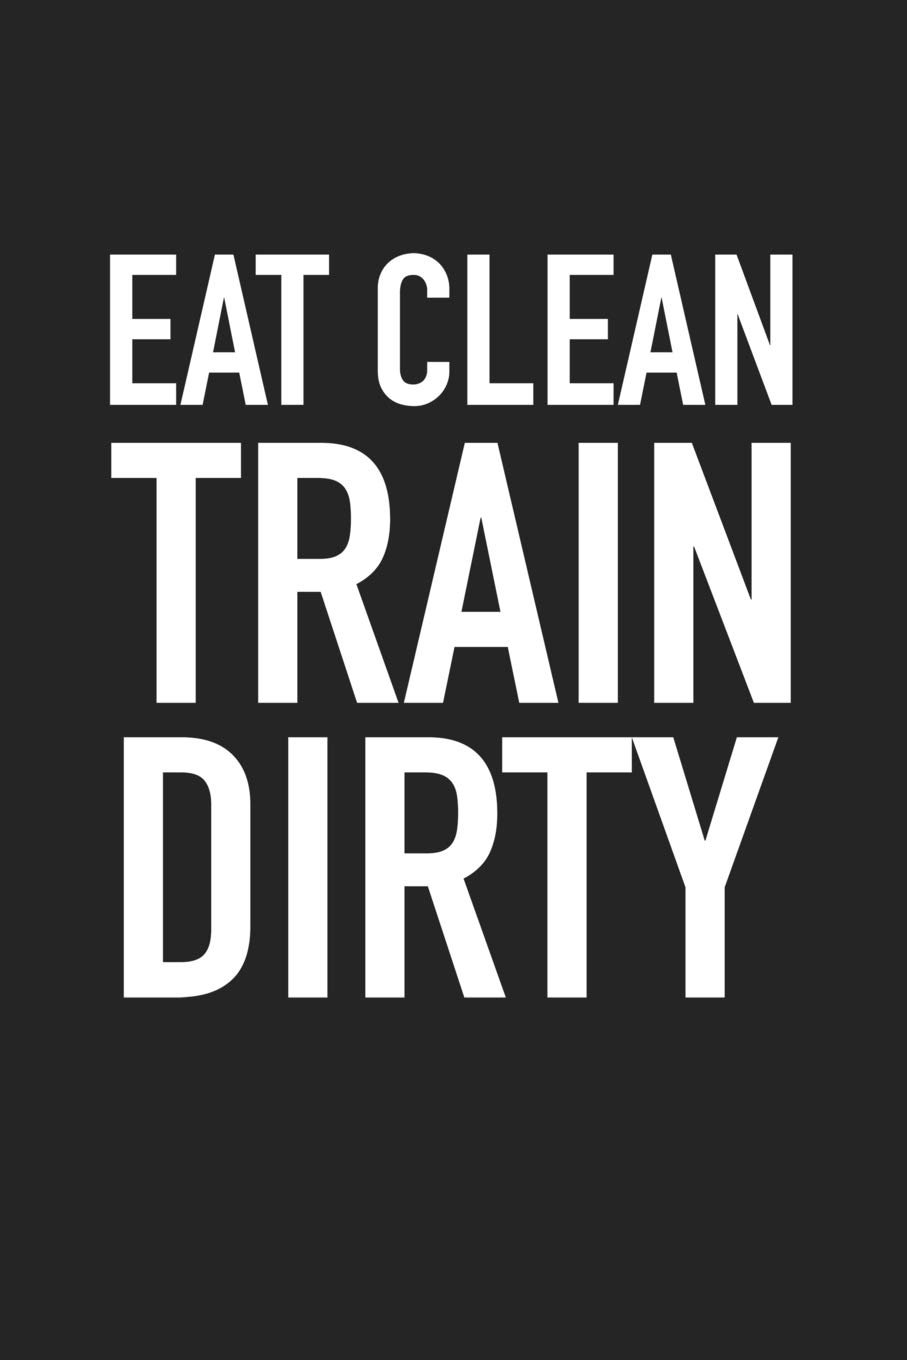 430d987a Eat Clean Train Dirty: A 6x9 Inch Matte Softcover Journal Notebook With 120  Blank Lined Pages And A Motivational Foodie Gym Workout Cover Slogan  Paperback ...